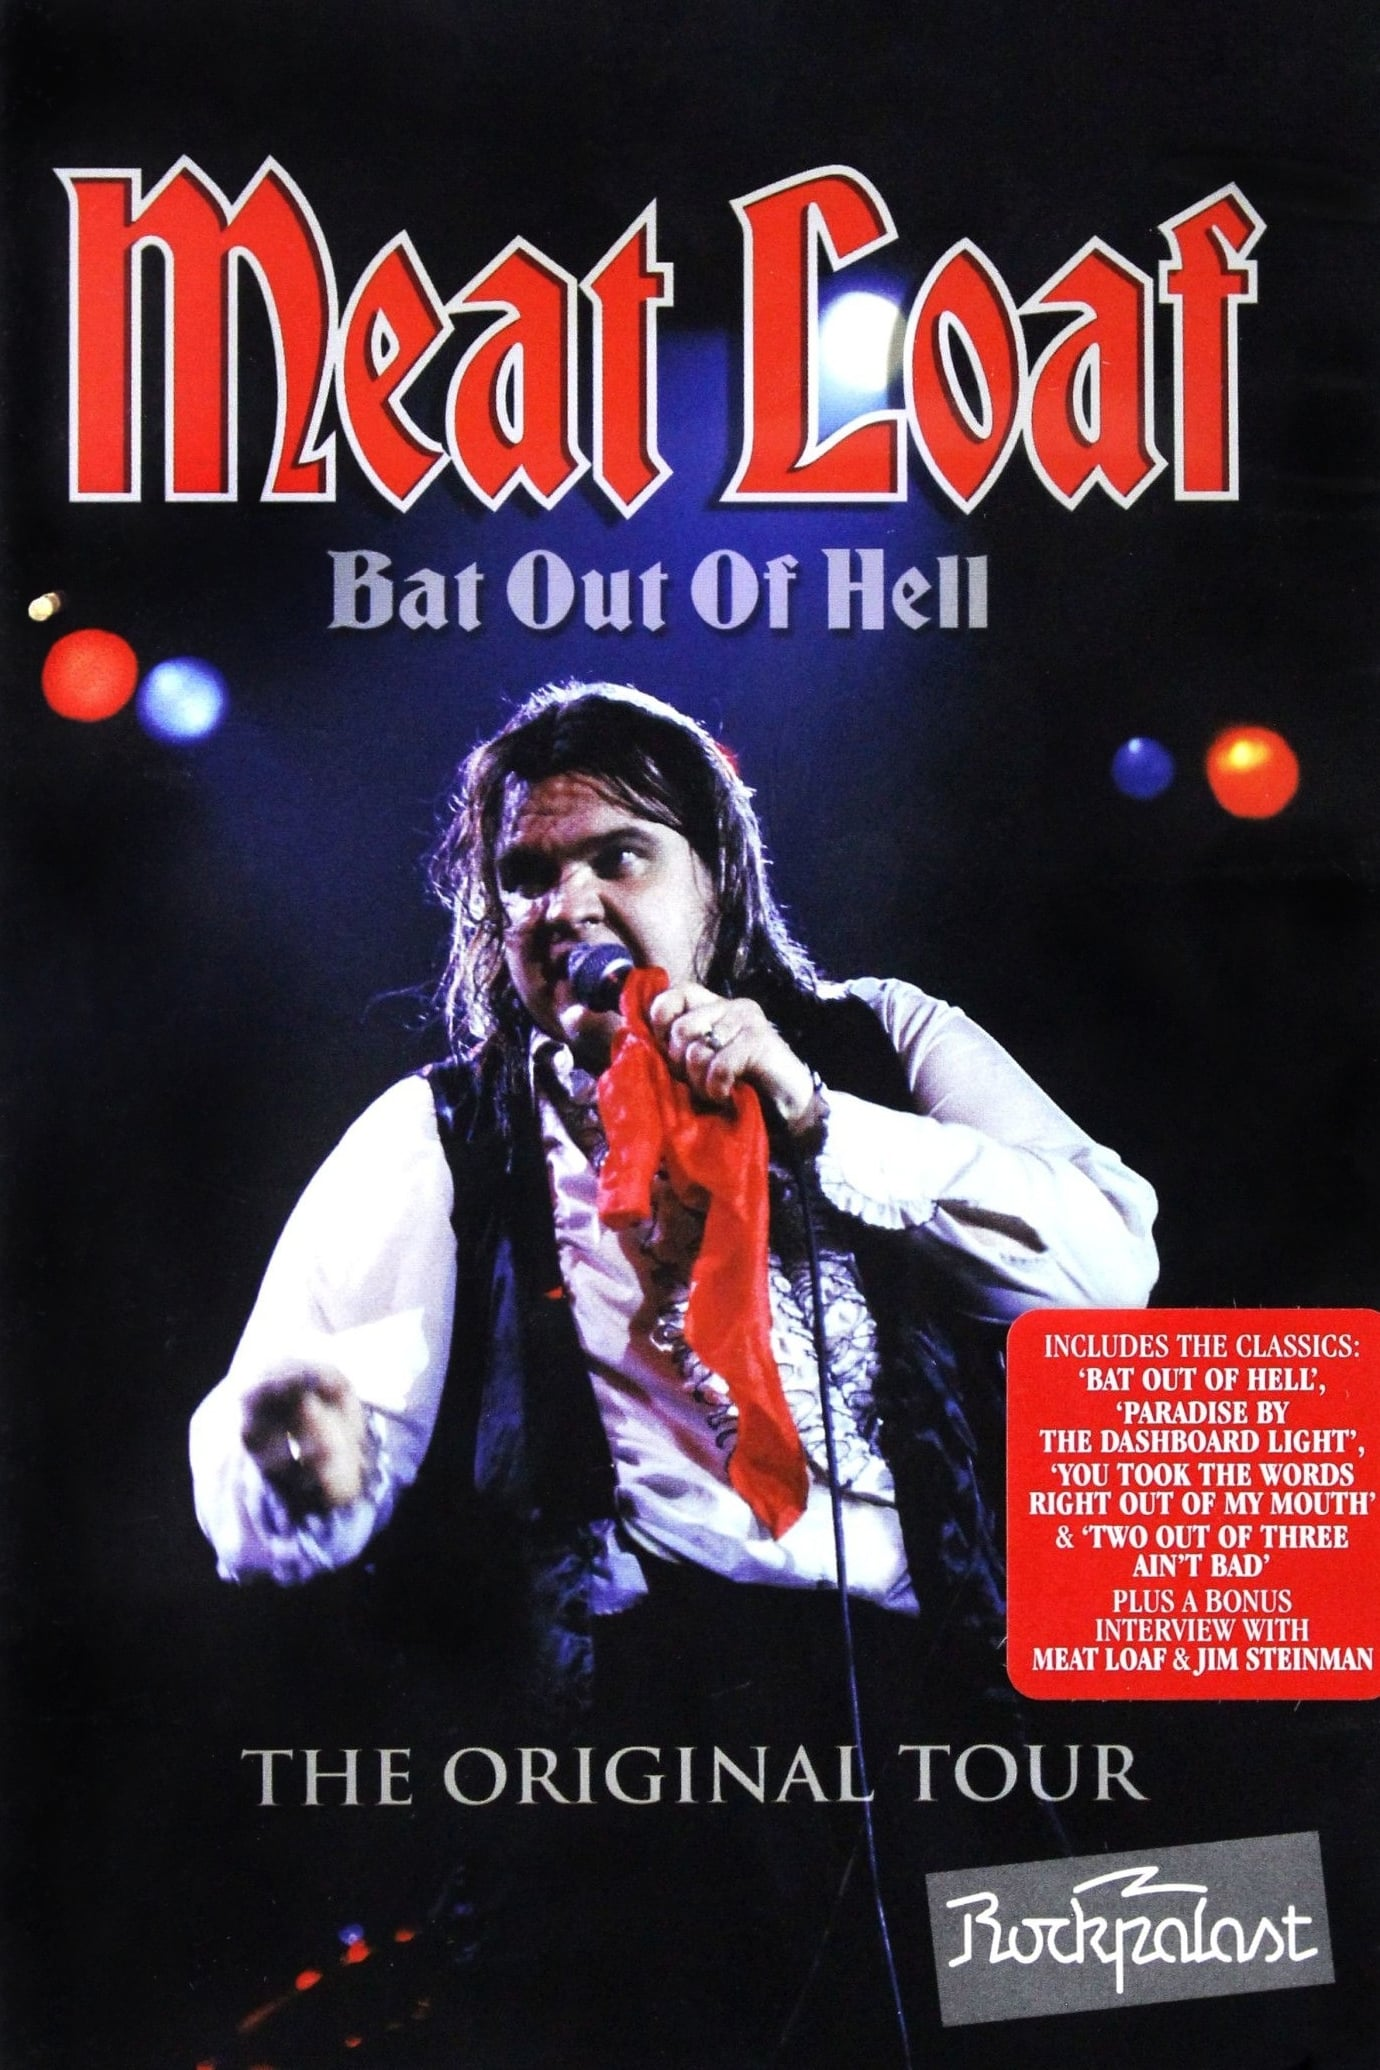 Meat Loaf: Bat Out Of Hell - The Original Tour (2009)